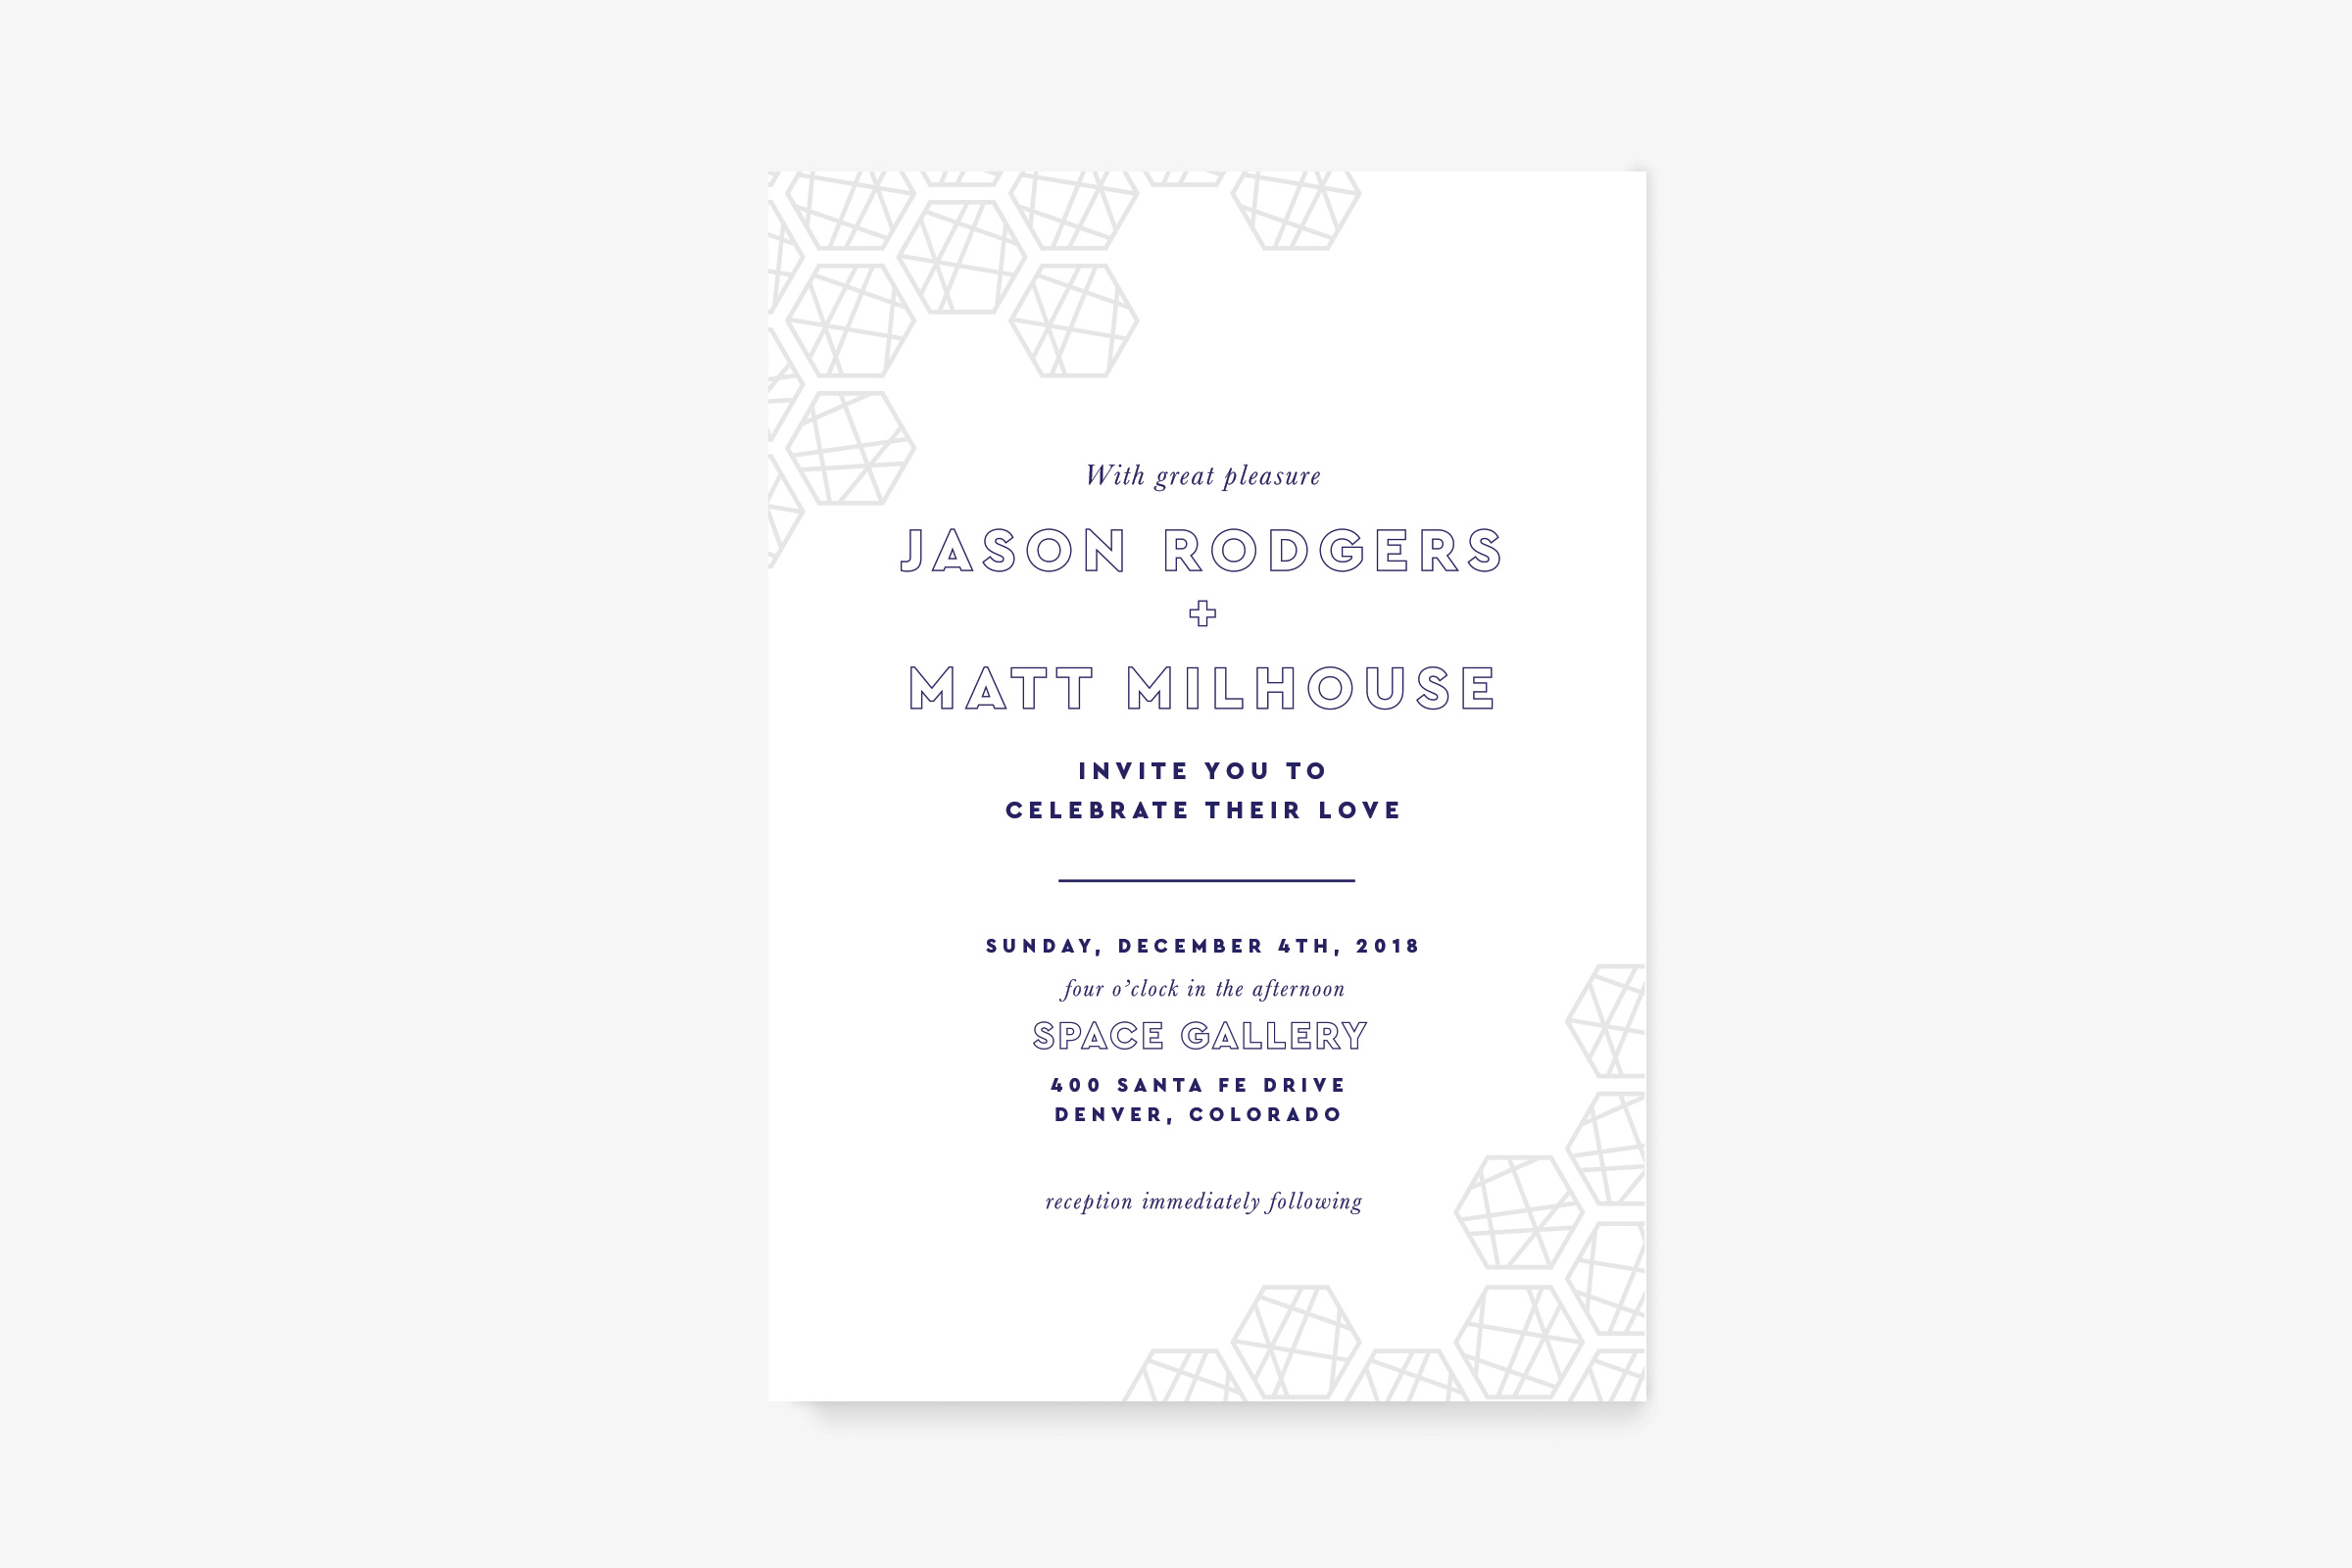 Honeycomb-invitation-closeup.jpg